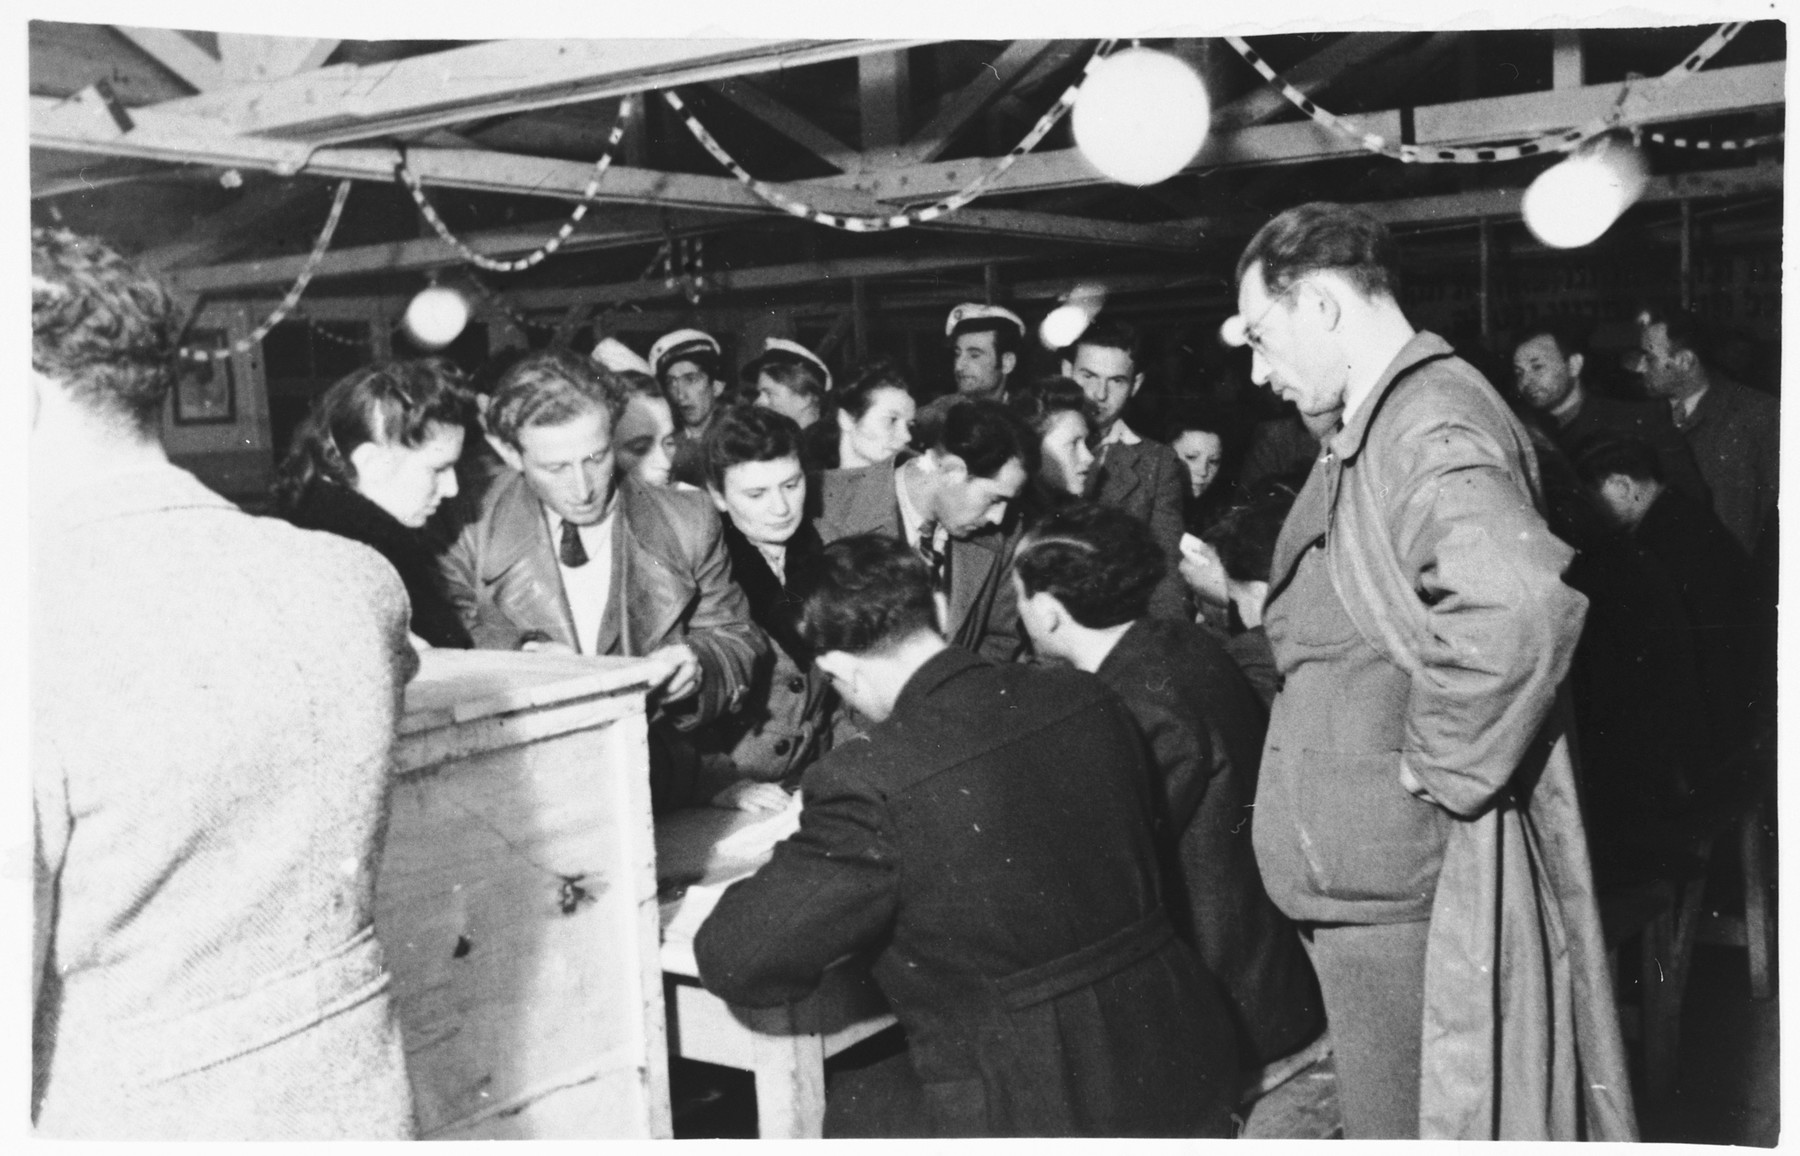 Men and women file past a table to vote in elections in the Zeilsheim displaced persons' camp.  Among those pictured is Abraham Poznanski, in the center of the photo, looking down at the table, in profile.  His wife, Hanka (Anna) Poznanski is standing behind him, looking off to the right.